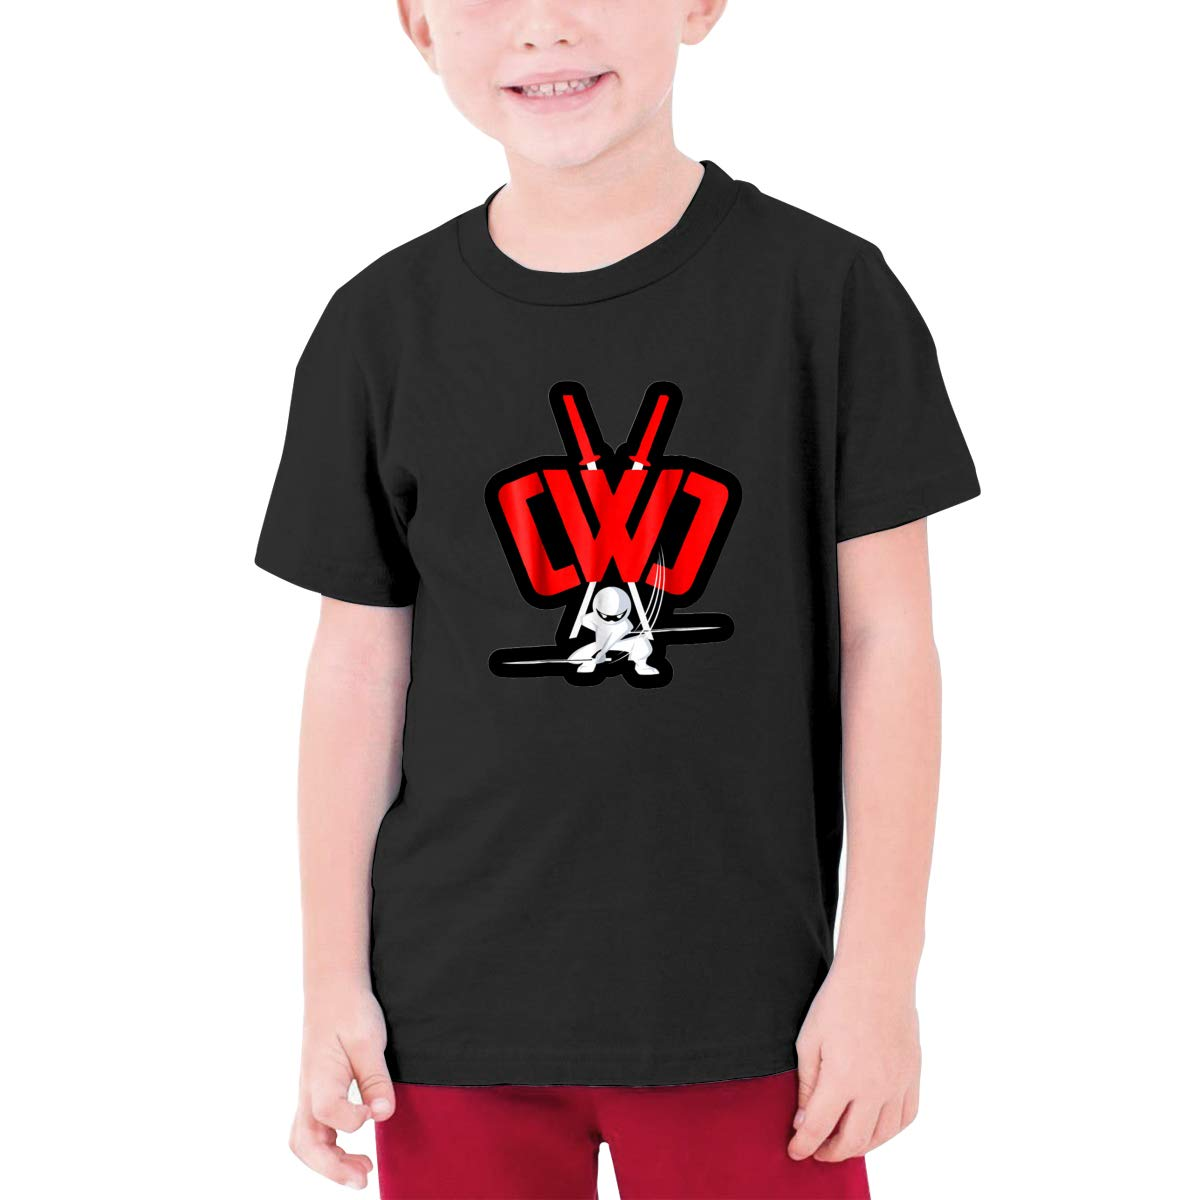 CWC Chad Wild Clay Kids O-Neck 3D Printing Youth Fashion Tops,BlackNidey